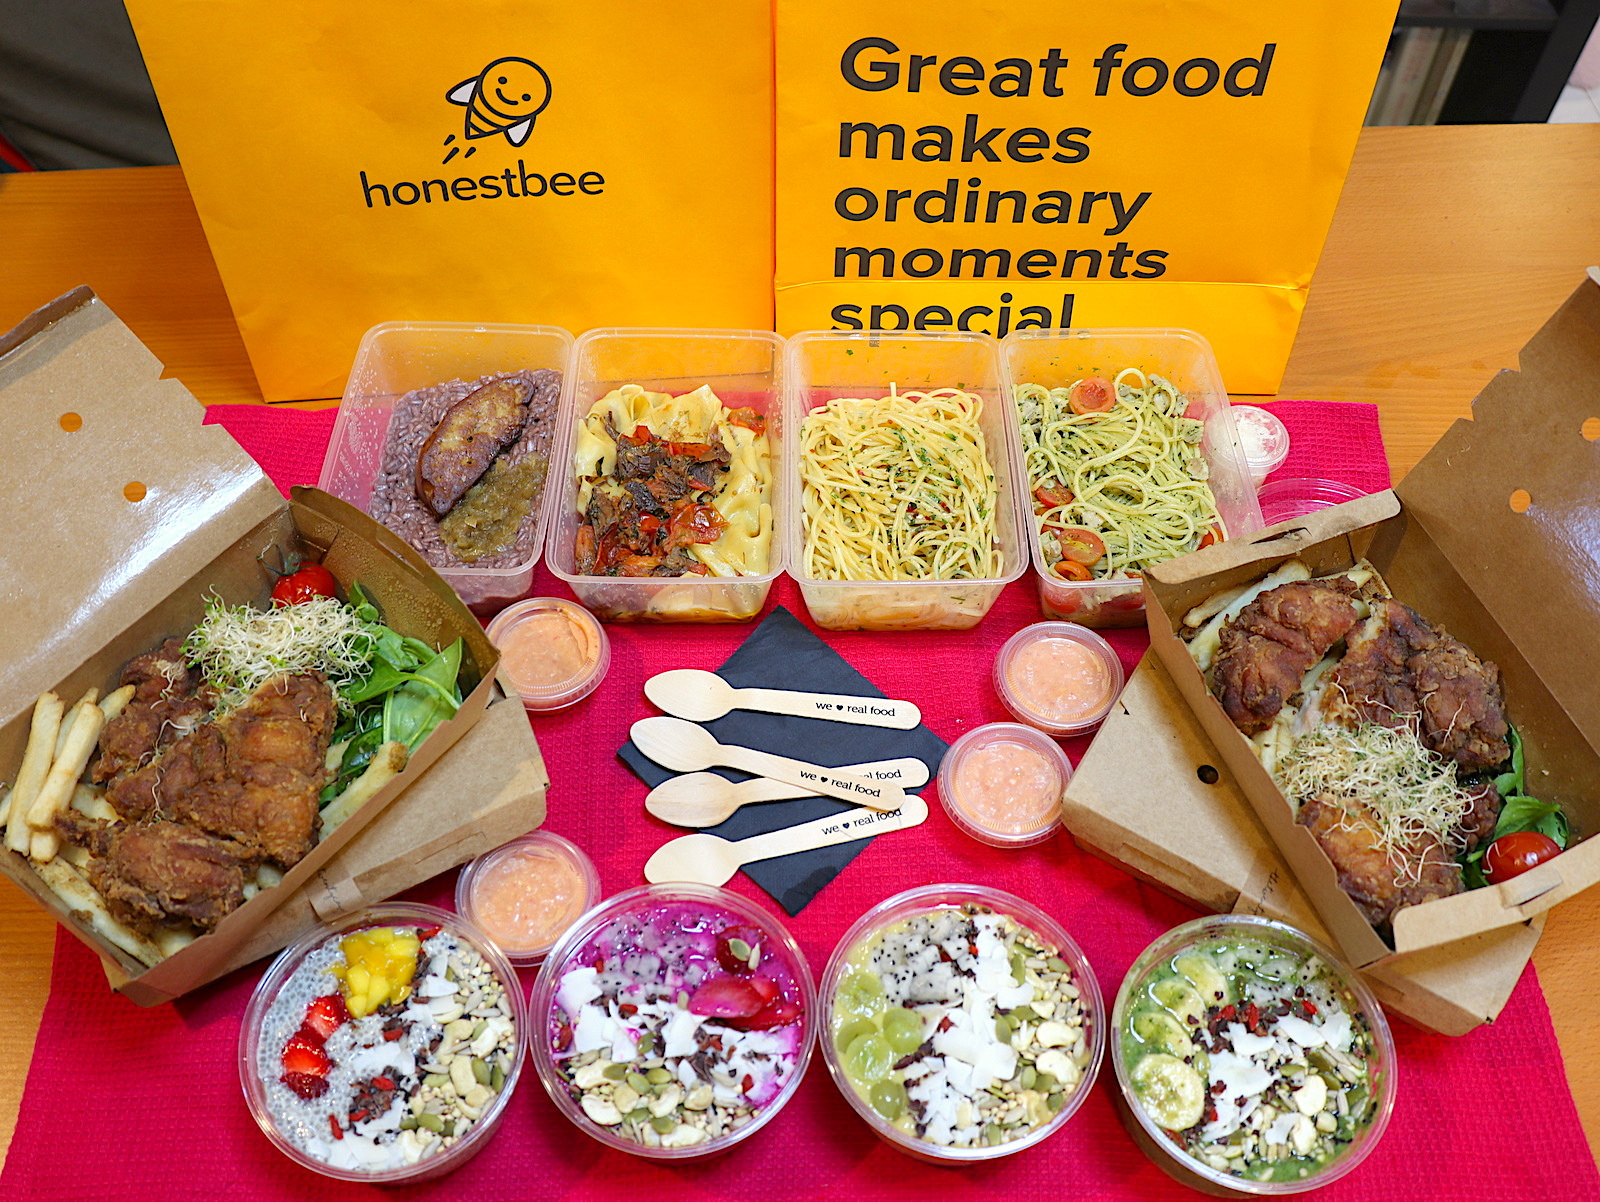 Honestbee 2nd anniversary: 1 for 1 food promo and $18 off plus free